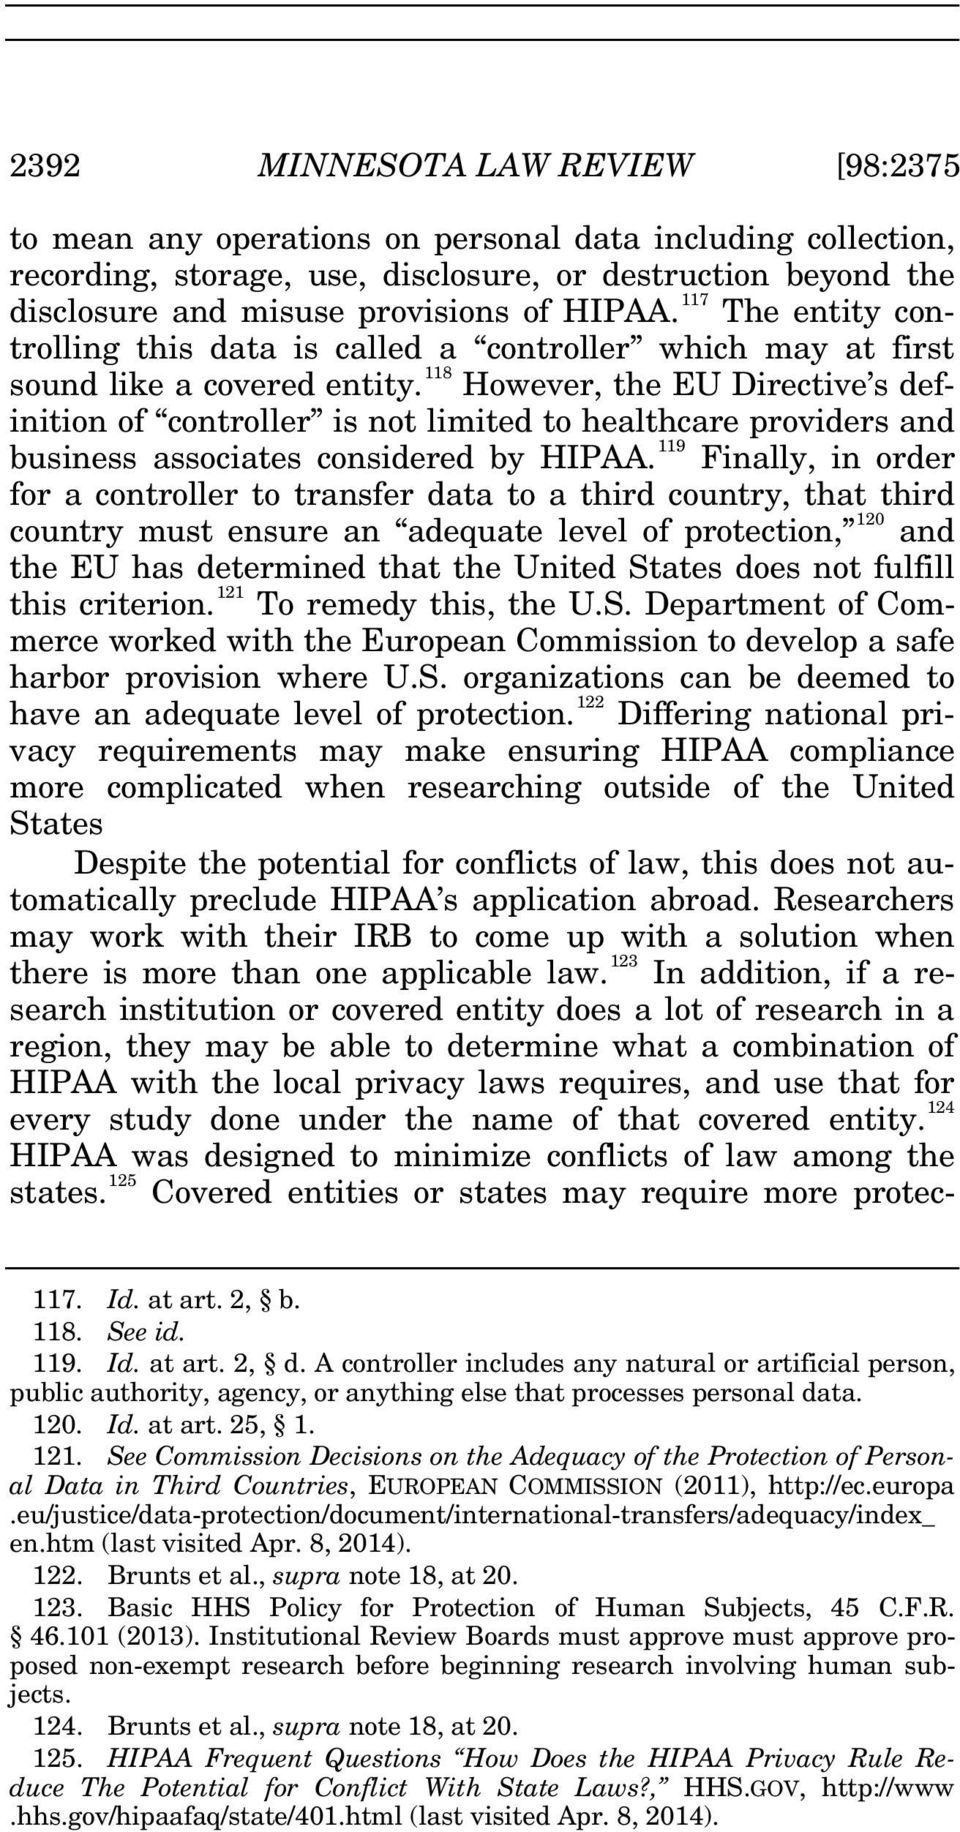 118 However, the EU Directive s definition of controller is not limited to healthcare providers and business associates considered by HIPAA.